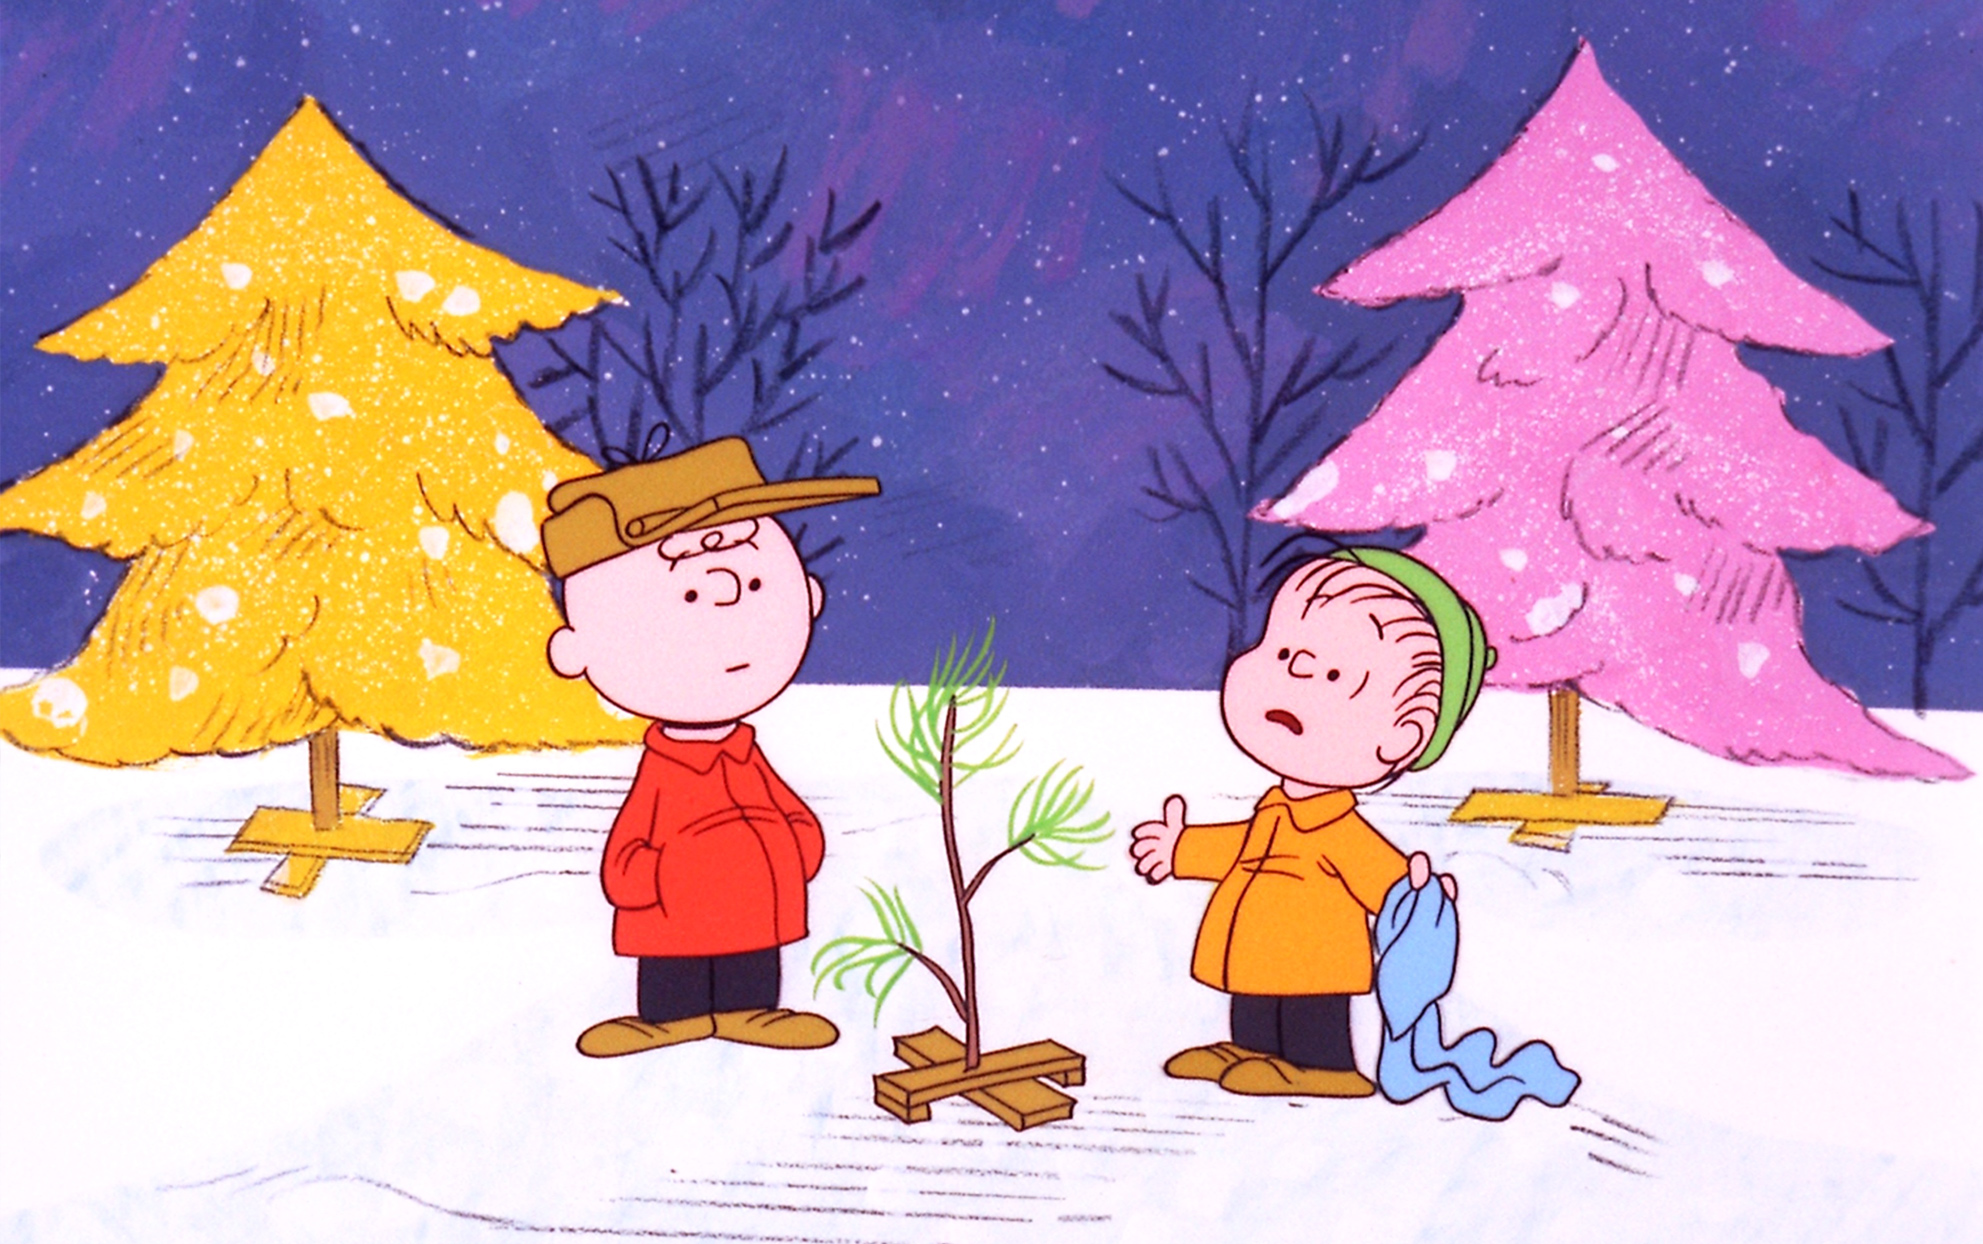 still from A Charlie Brown Christmas show of the Christmas tree, Charlie Brown and Linus